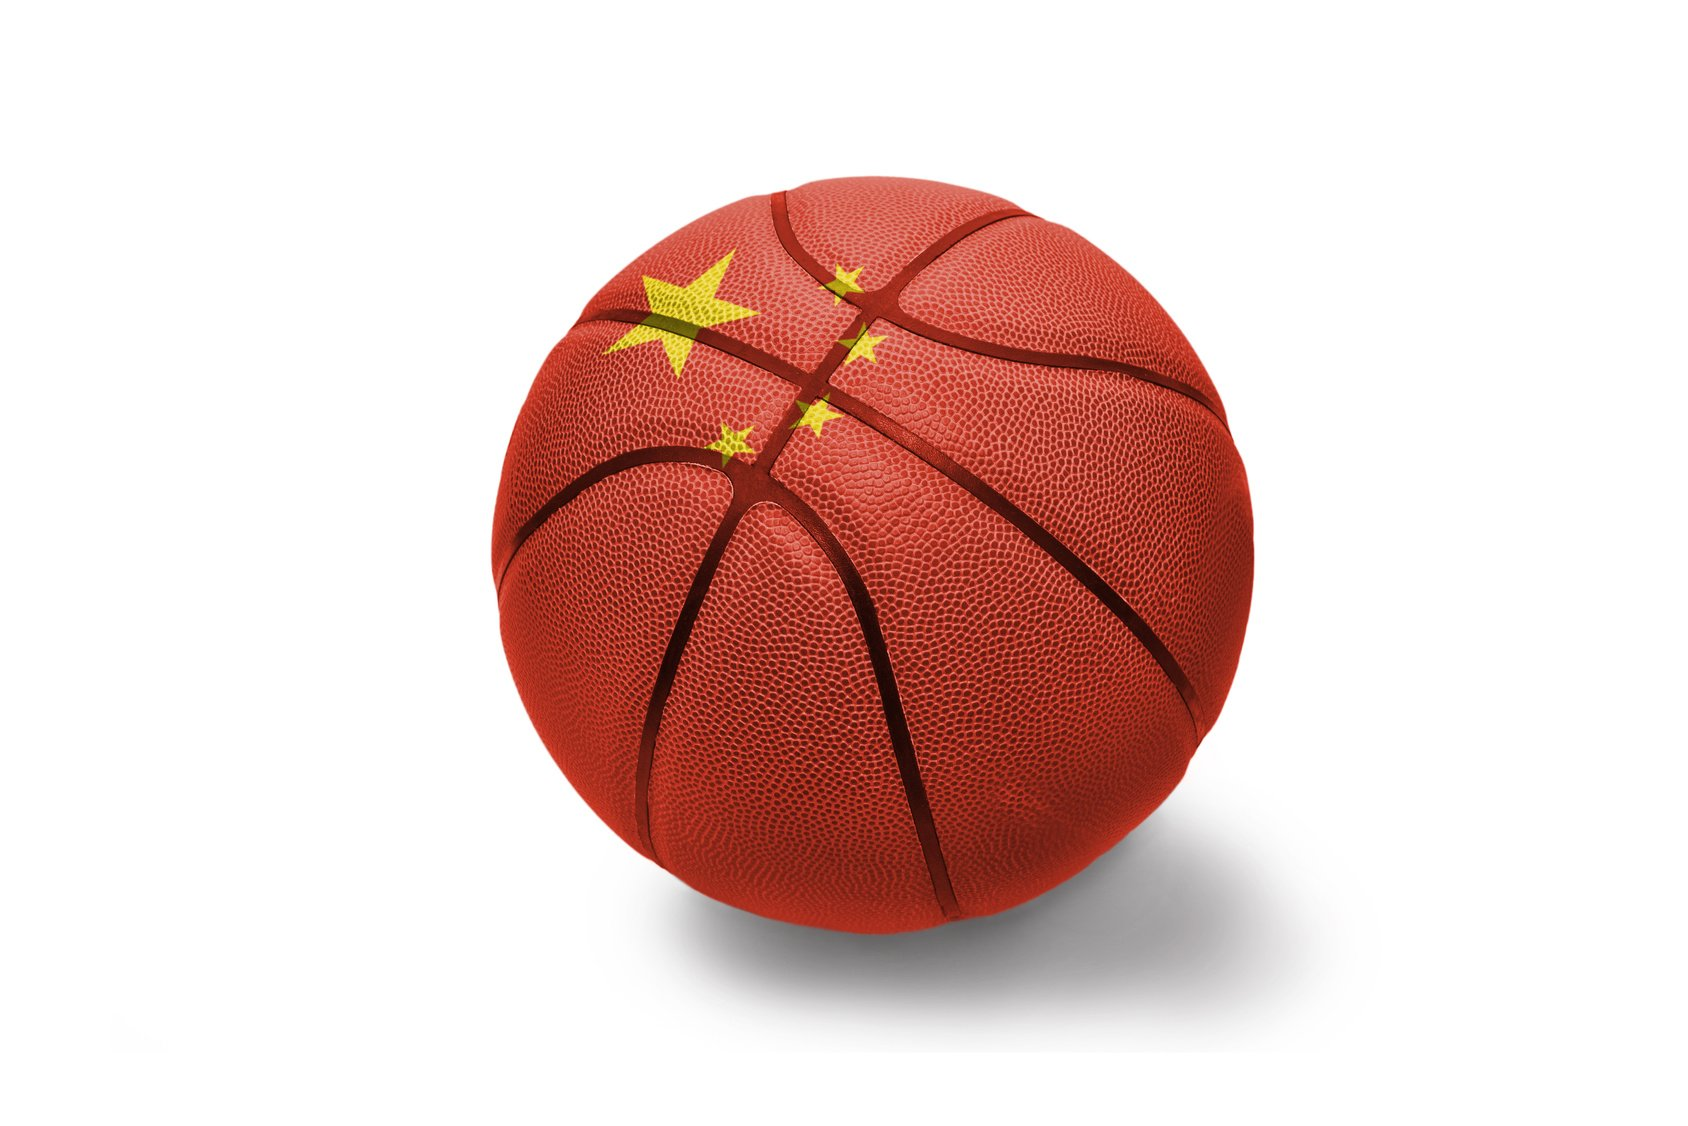 The NBA is Broadcasted in China